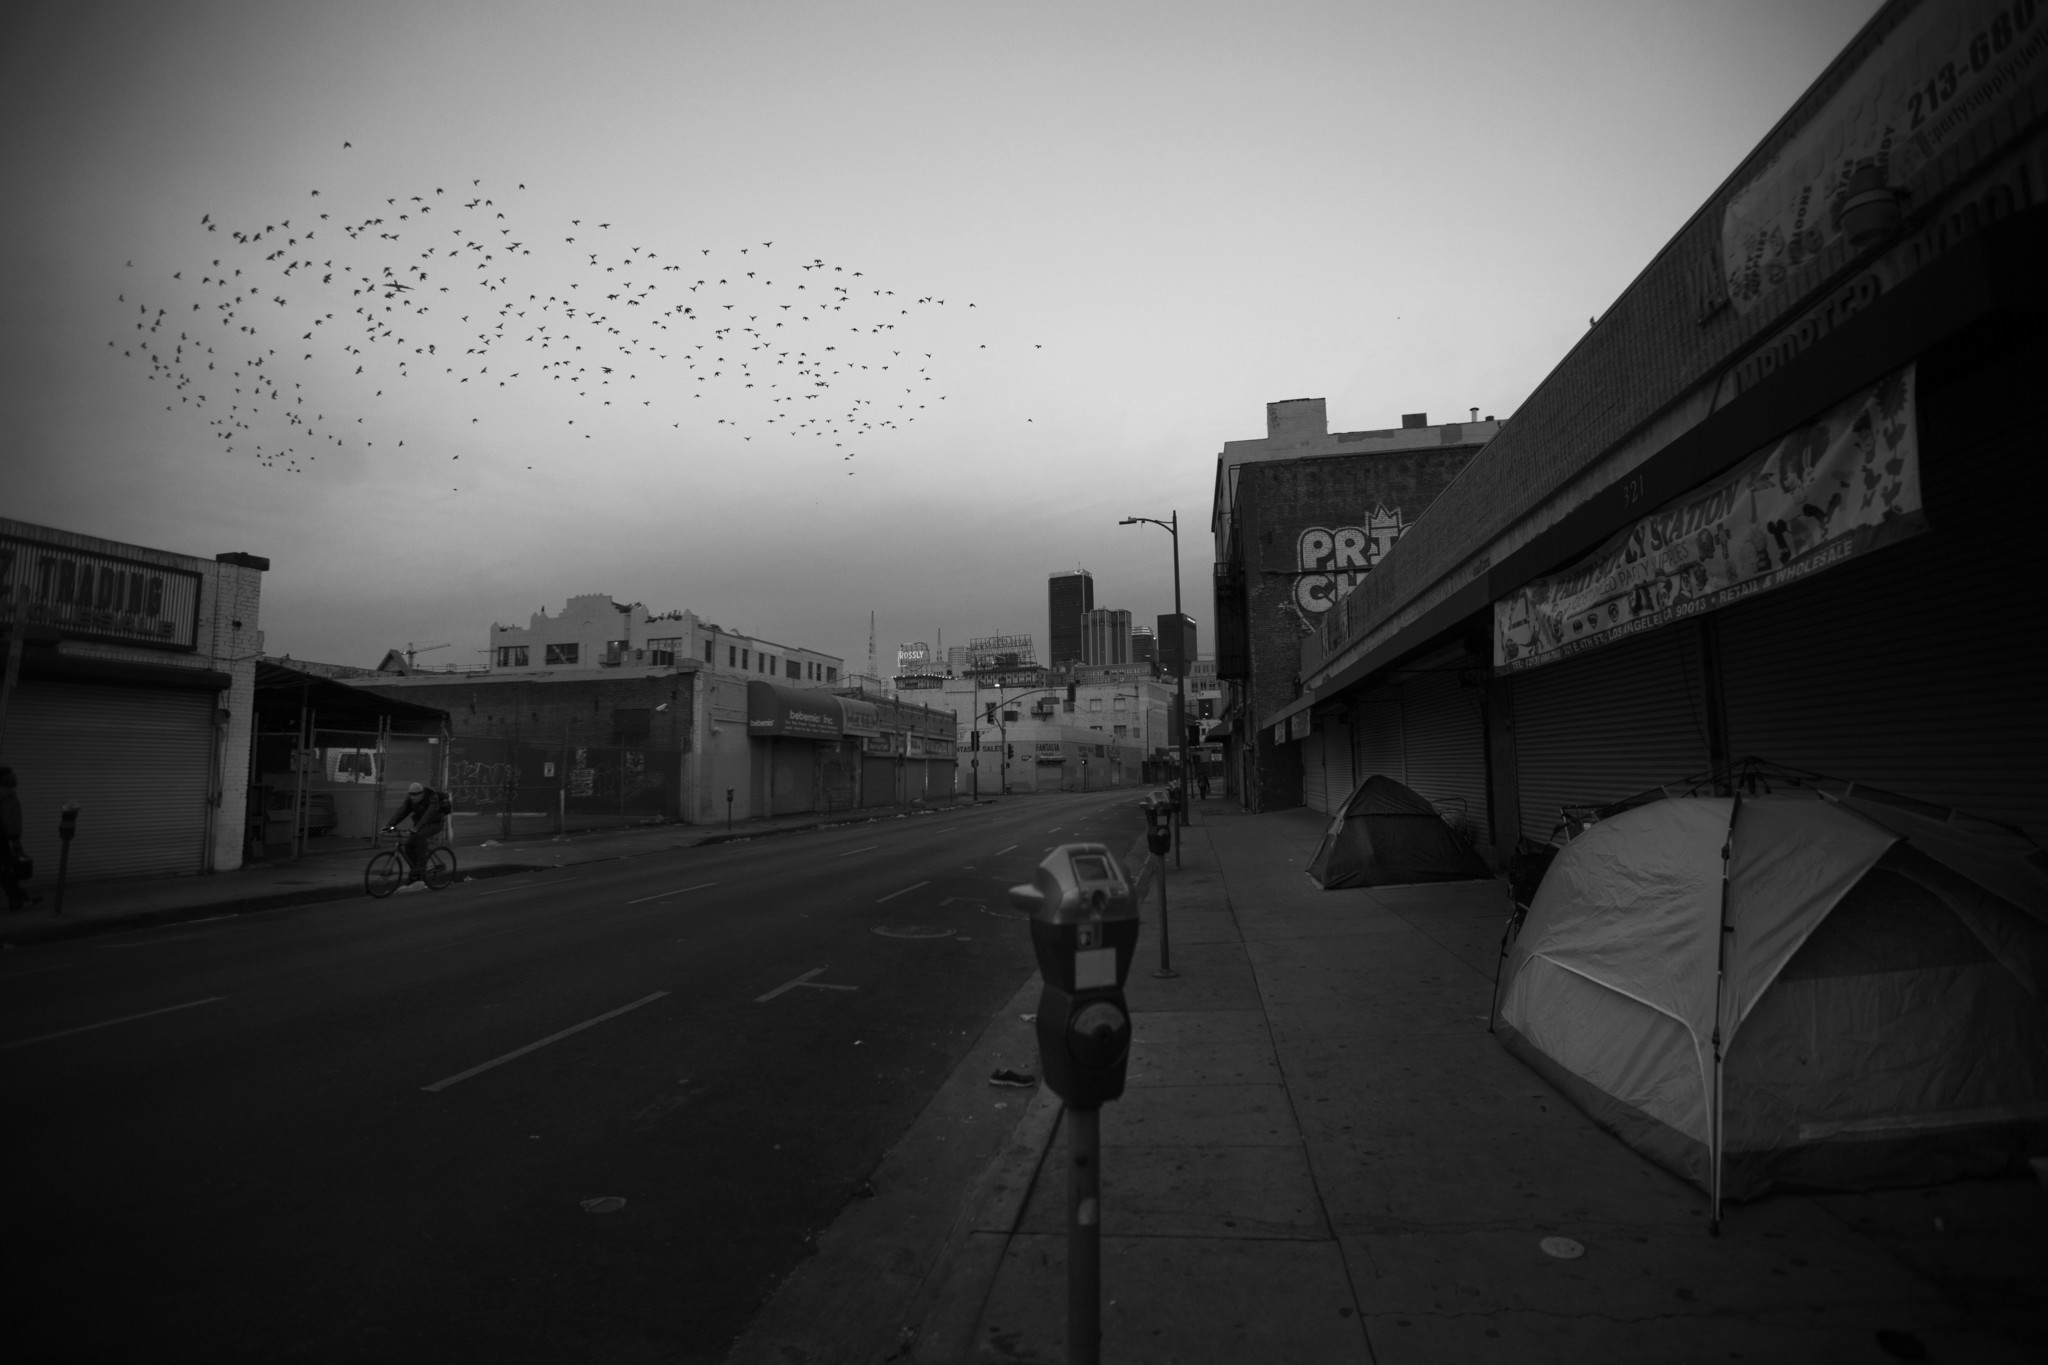 A flock of birds flies over a sidewalk encampment early one morning--as if they could lift up the m